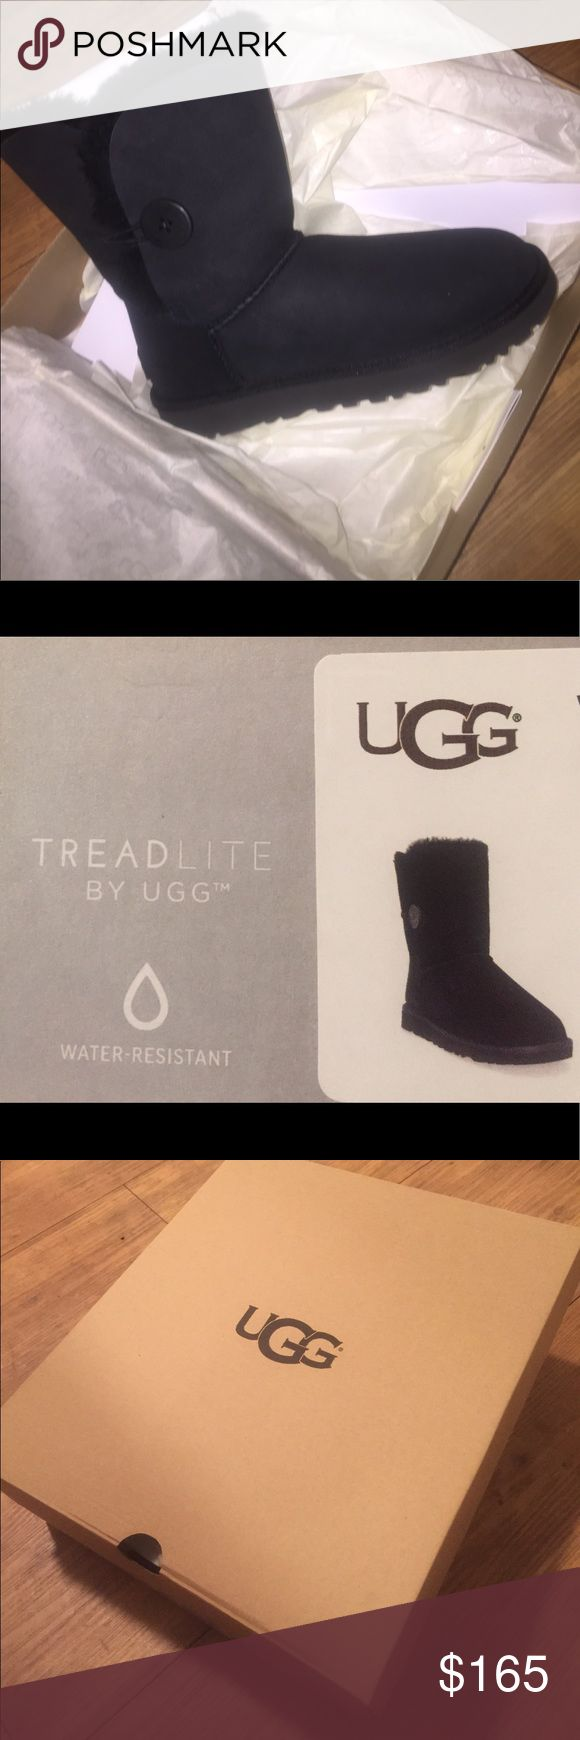 Black Ugg boots-- NEW never worn!! Bailey Button II black Uggs - super warm and comfy, new never worn!! UGG Shoes Winter & Rain Boots